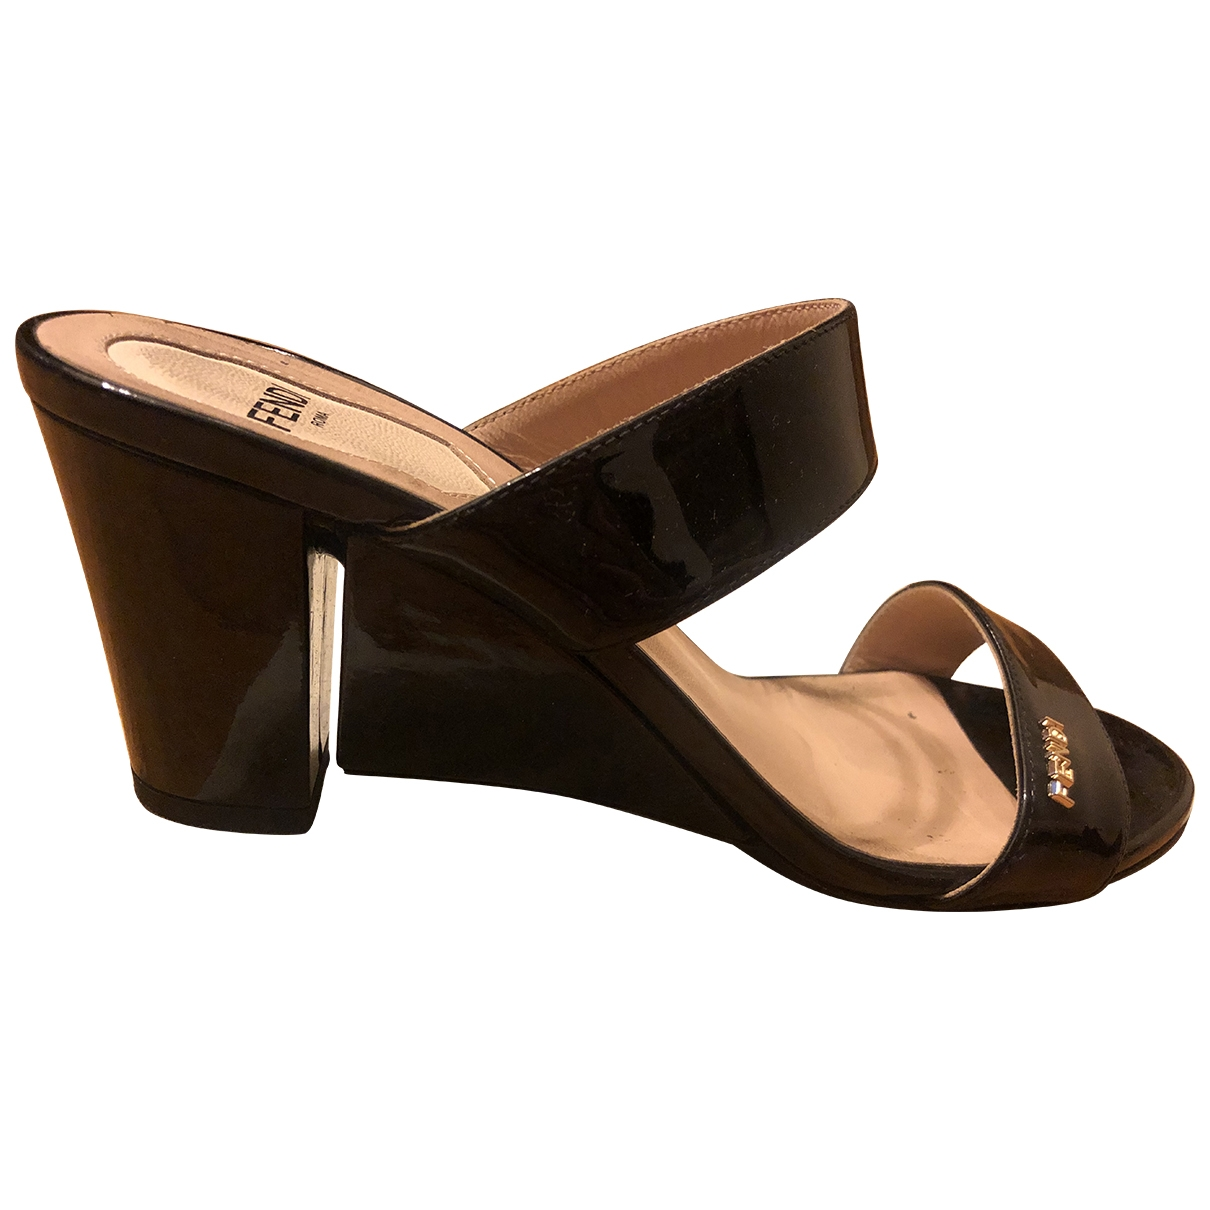 Fendi \N Black Leather Sandals for Women 37 EU